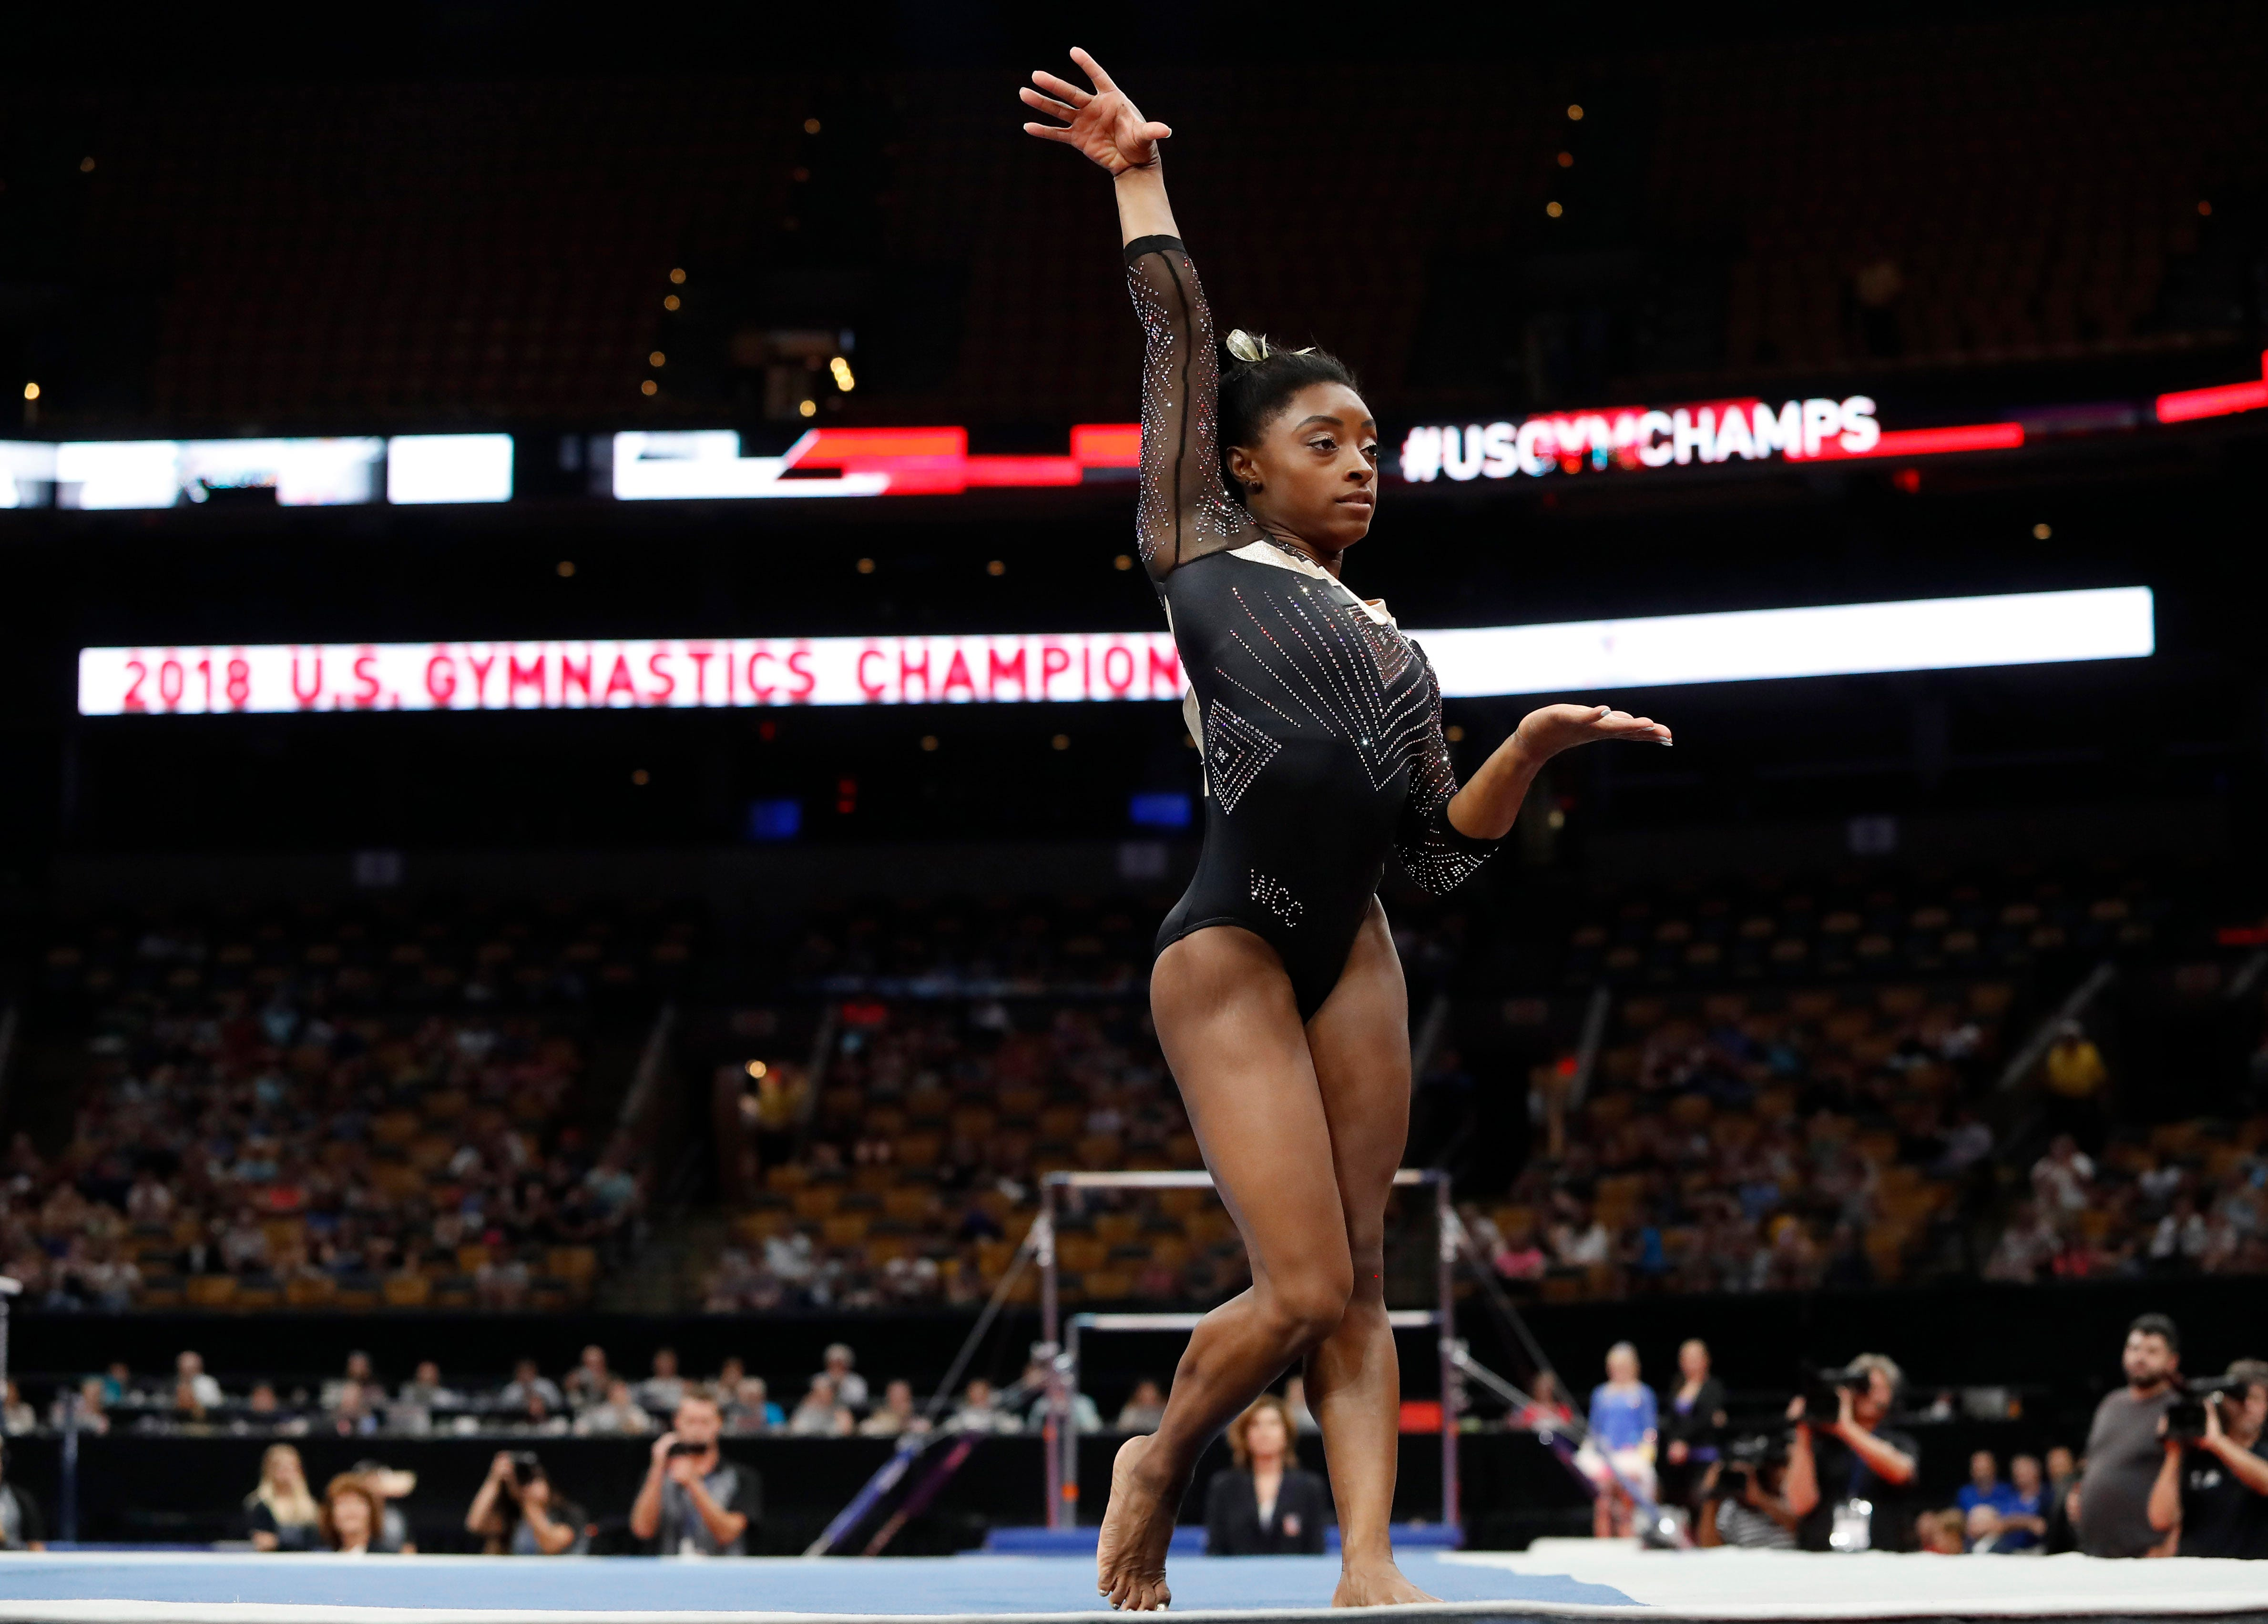 In least-surprising news ever, Simone Biles makes team for world gymnastics championships